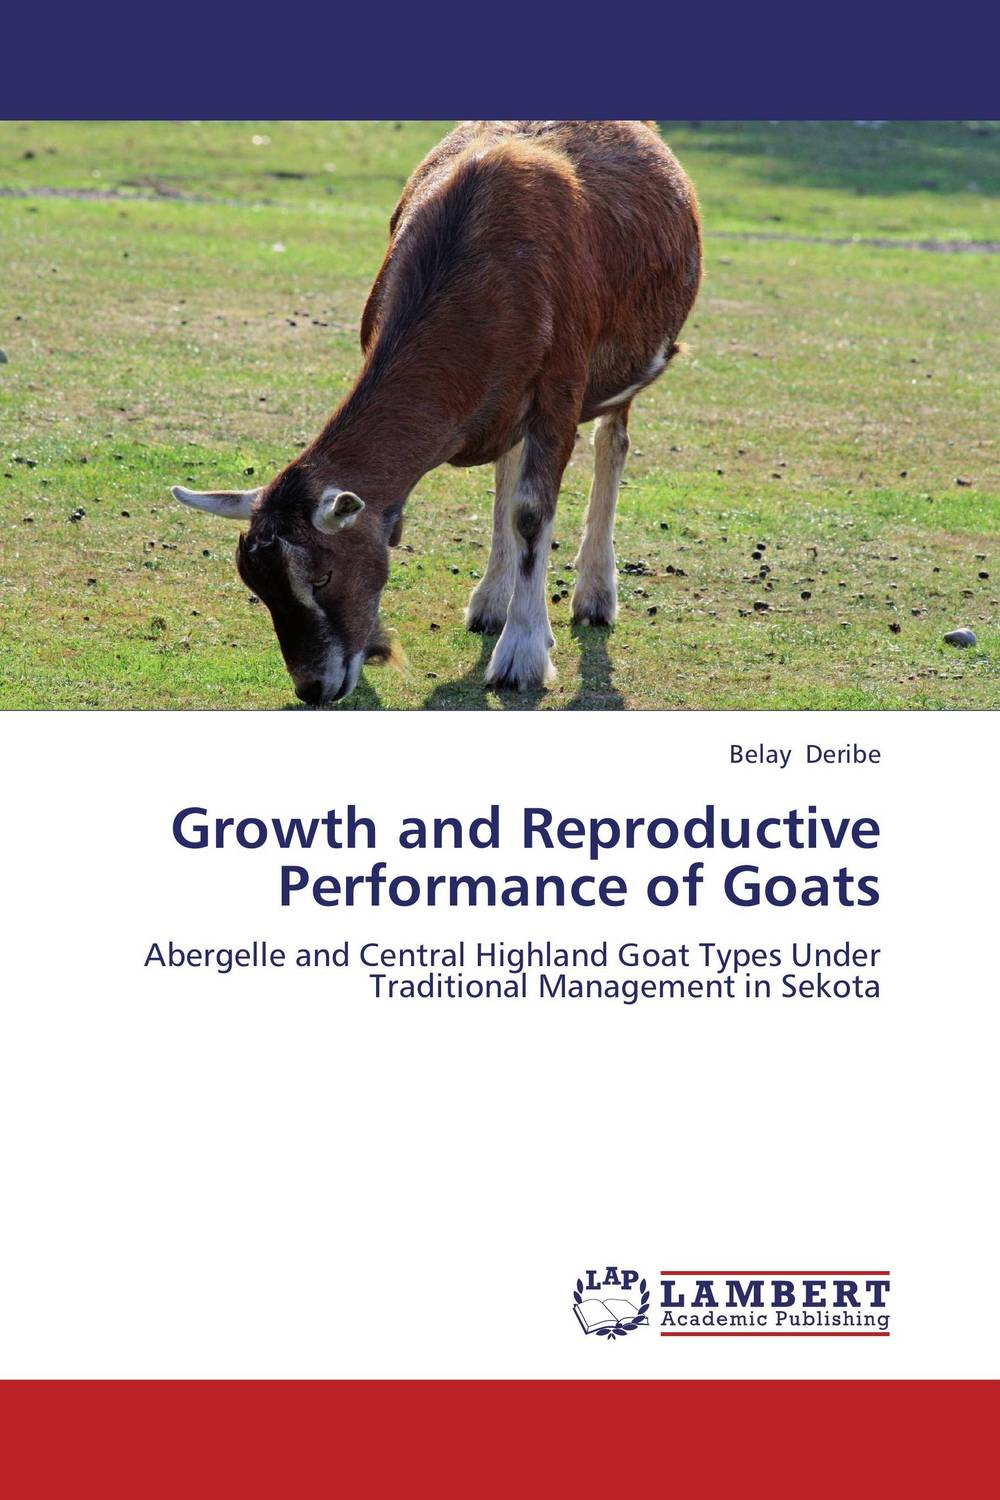 Growth and Reproductive Performance of Goats manjari singh introducing and reviewing preterm delivery and low birth weight